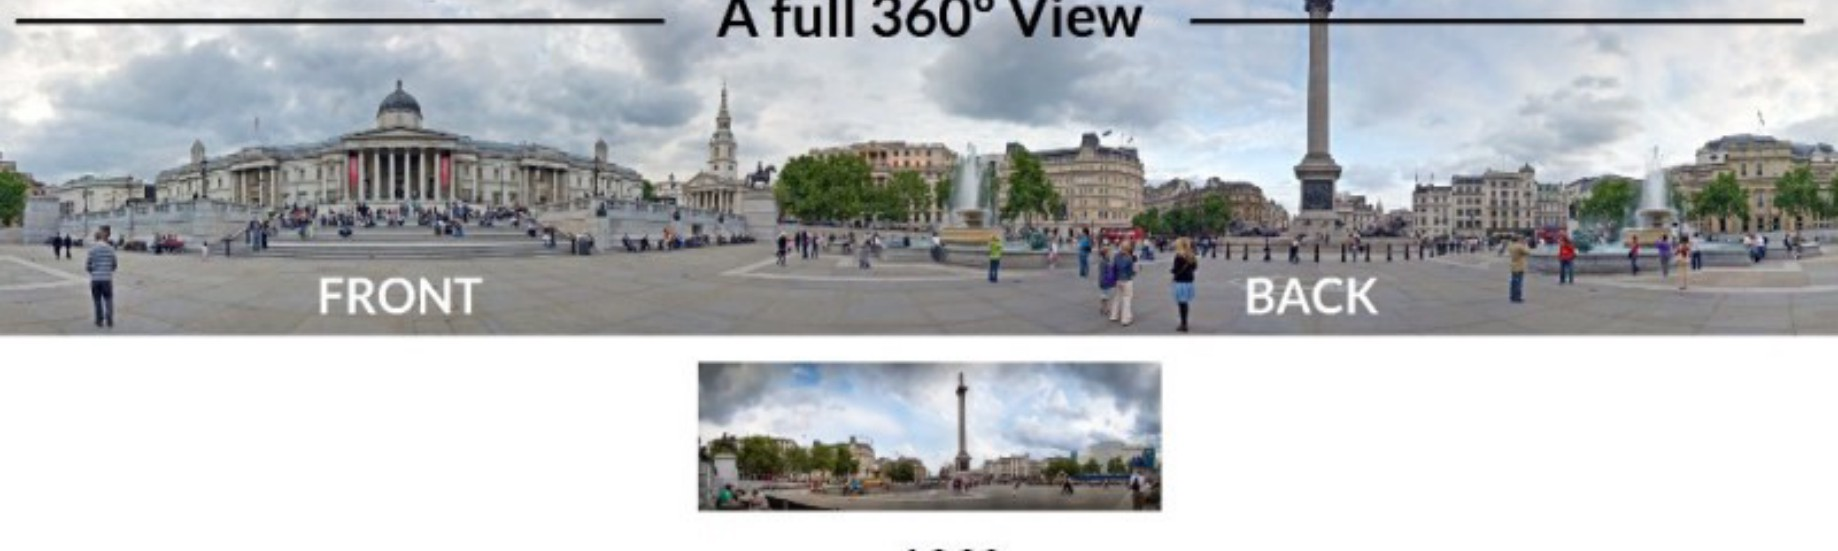 Panorama vs 360° vs 3D vs VR — The Big Difference - Frulix - Medium